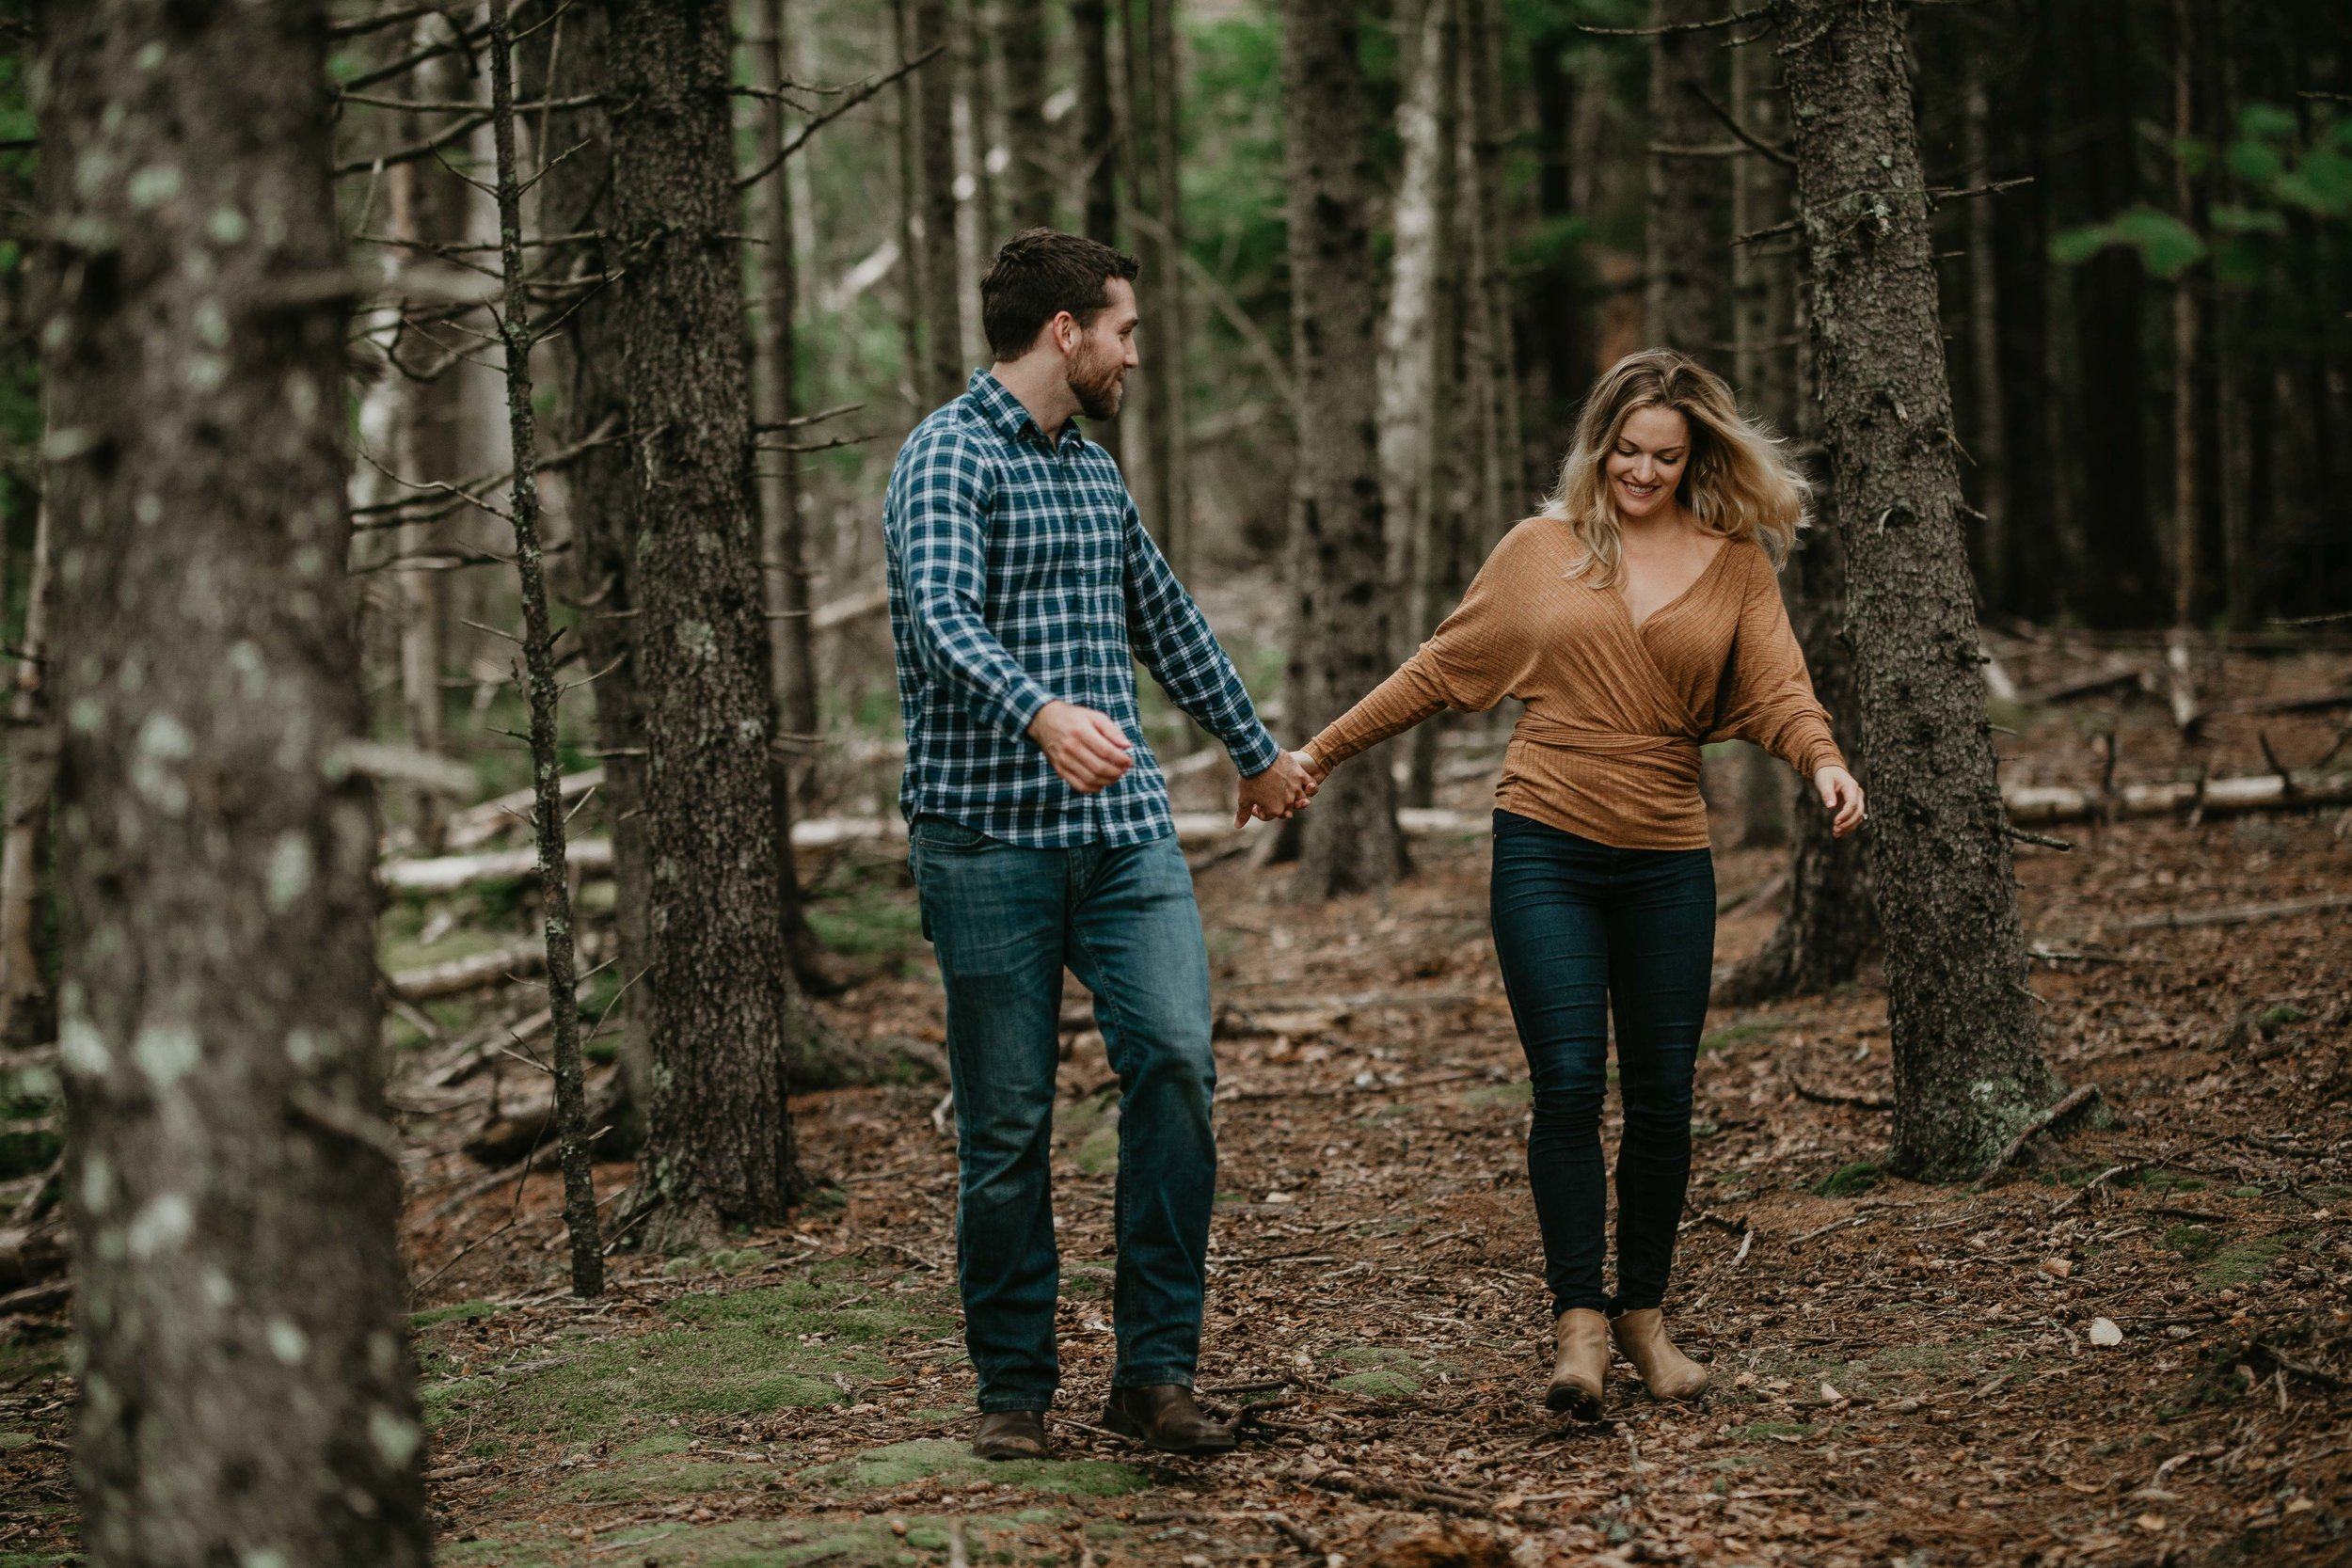 nicole-daacke-photography-acadia-national-park-adventurous-engagement-session-photos-otter-cliffs-forests-coastline-sand-beach-adventure-session-bar-harbor-mt-desert-island-elopement-fall-bass-harbor-lighthouse-wedding-maine-landscape-photographer-48.jpg